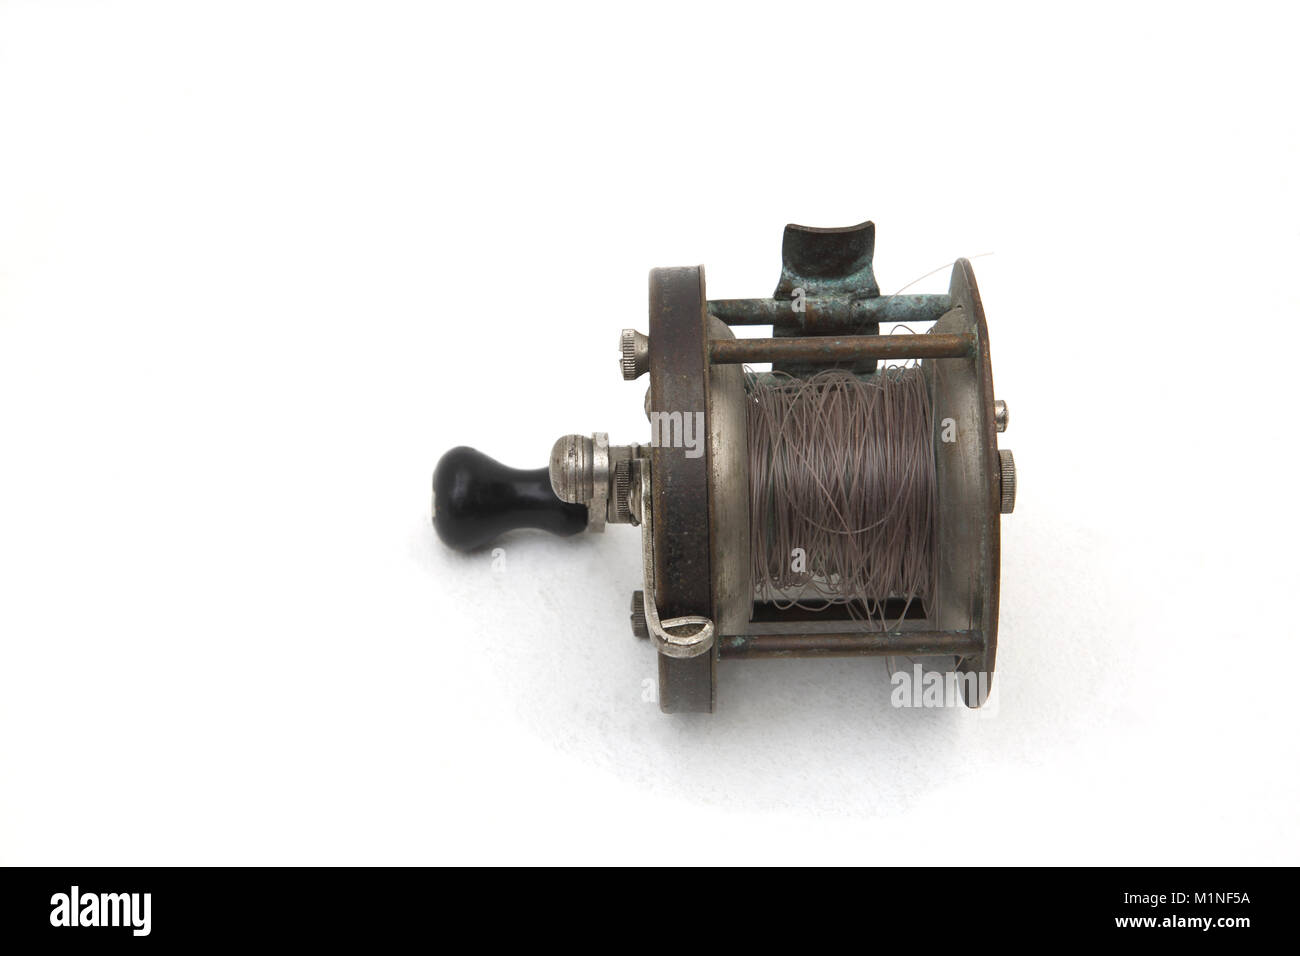 Vintage Four Brothers Sumco Fishing Reel - Stock Image